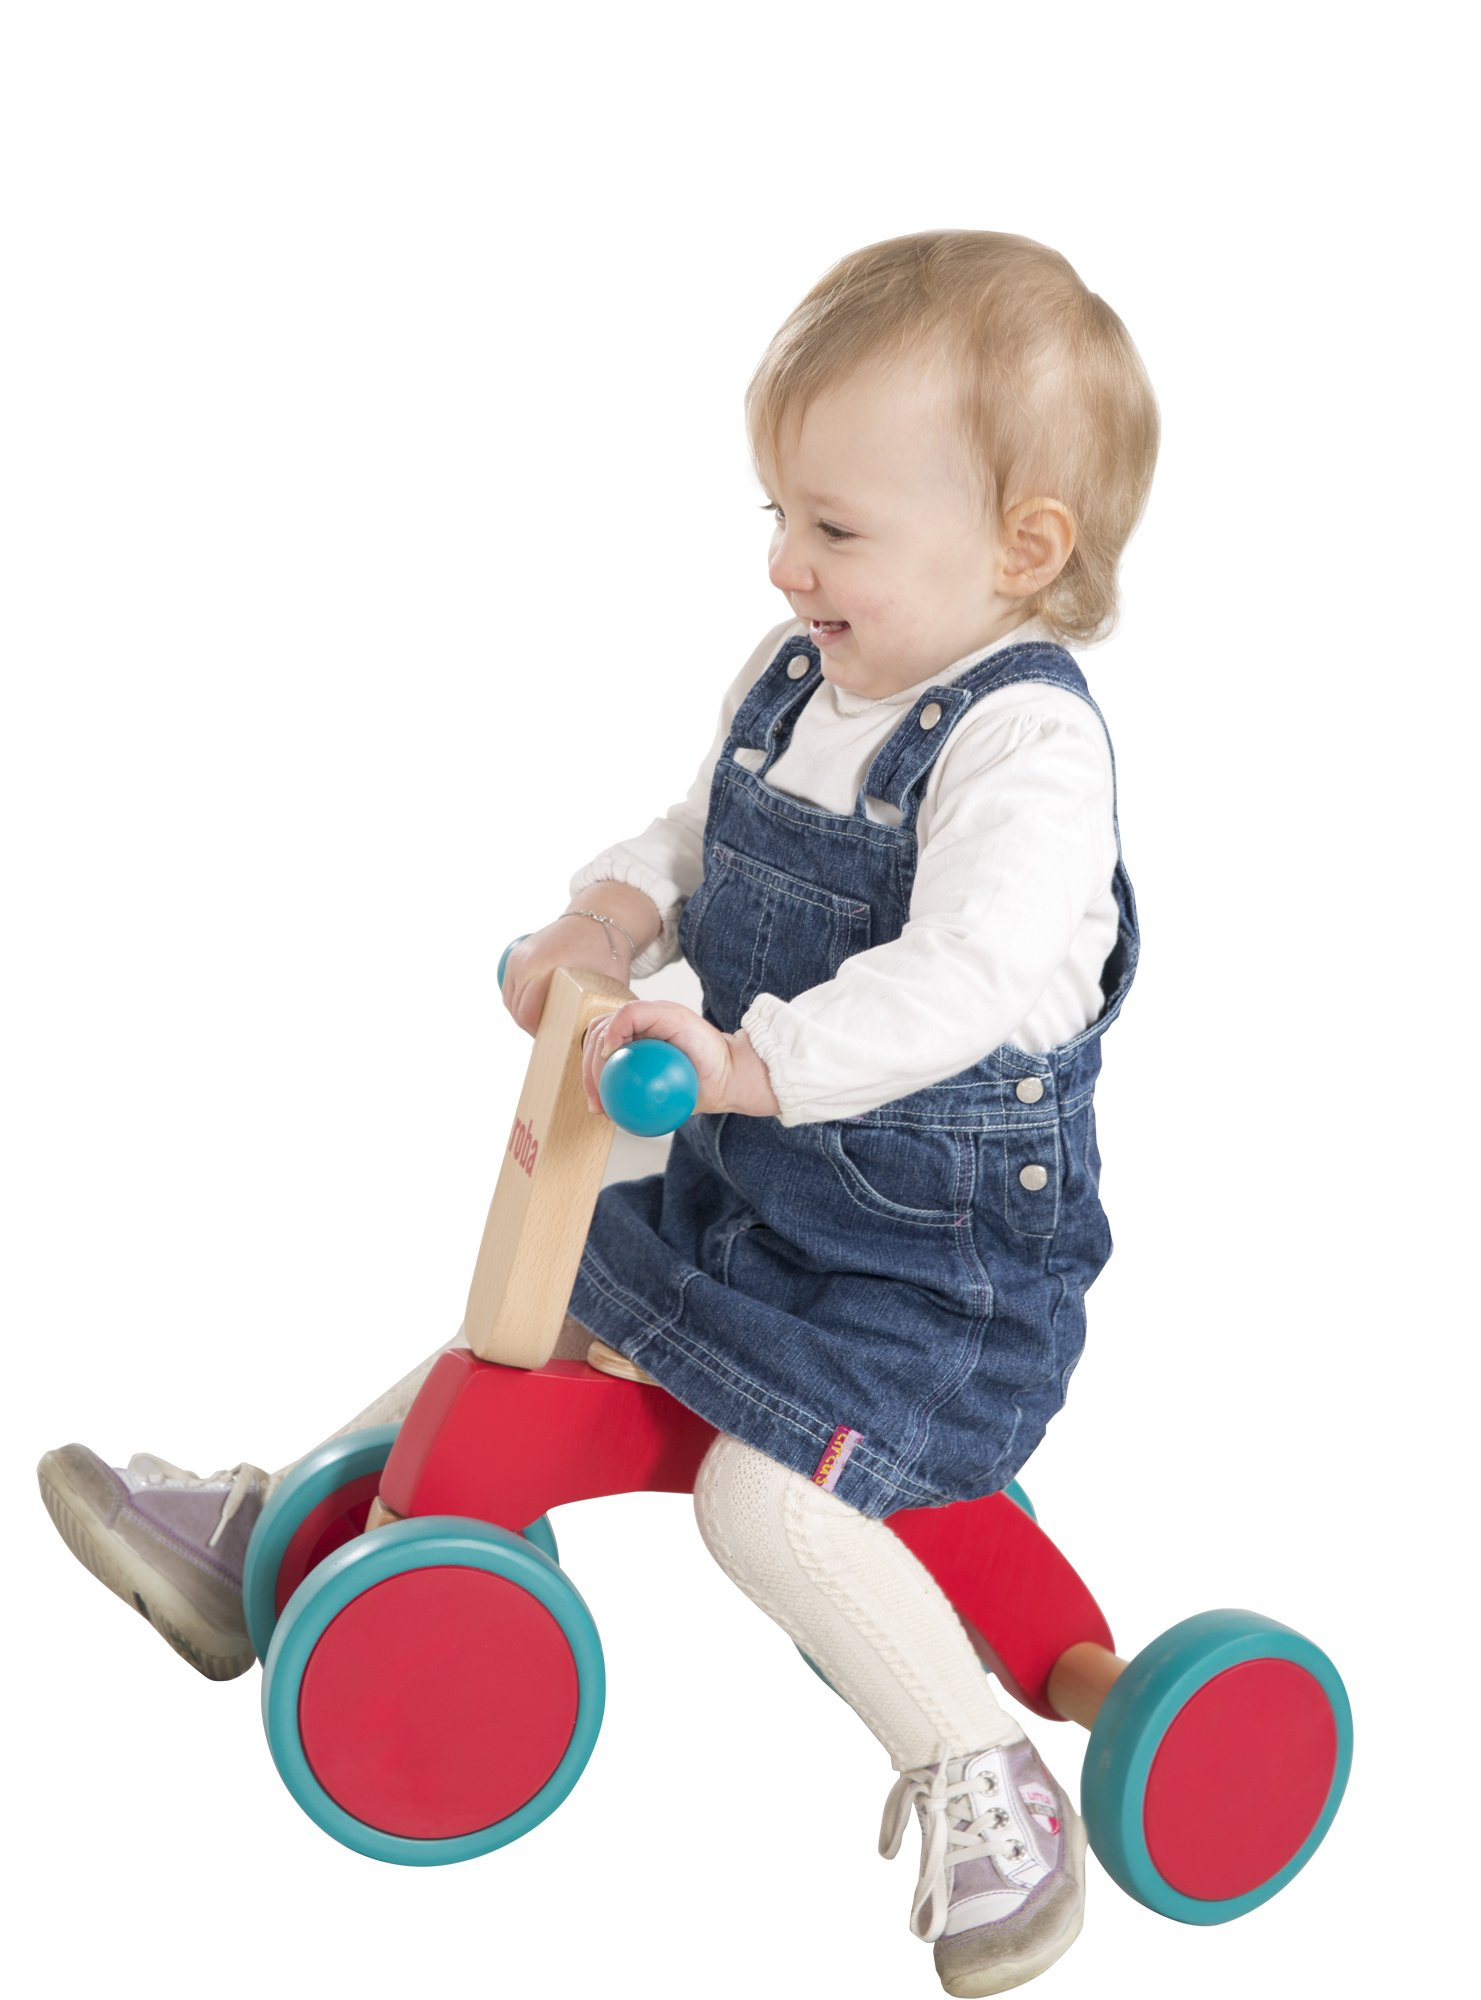 roba Wooden Vehicle for Toddlers from 1Year Old  This Roba wooden vehicle is the ideal learner's bicycle from toddlers of 12months and over to learn about balance and body coordination while having fun. The vehicle has a soft padded seat that is 22cm in height, and is suitable for children who are 80cm tall and over. The large coloured rubber tyres made from soft material (won't harm the floor) ensures a secure grip and is easy to move forward – for indoor and outdoor use. 5